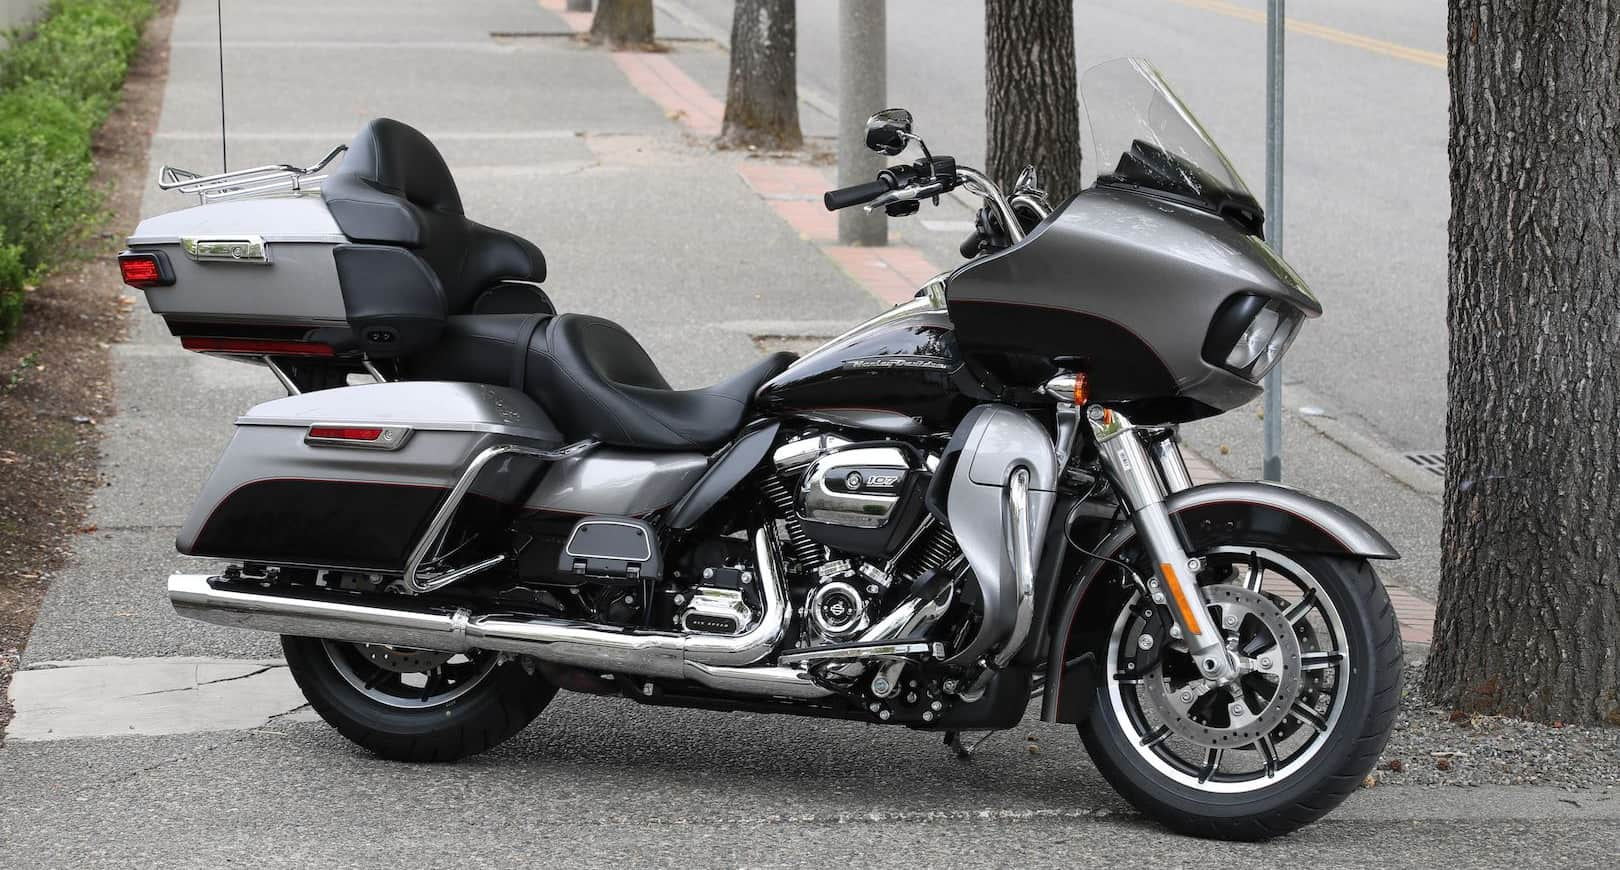 Harley-Davidson Road Glide – commuter motorcycle